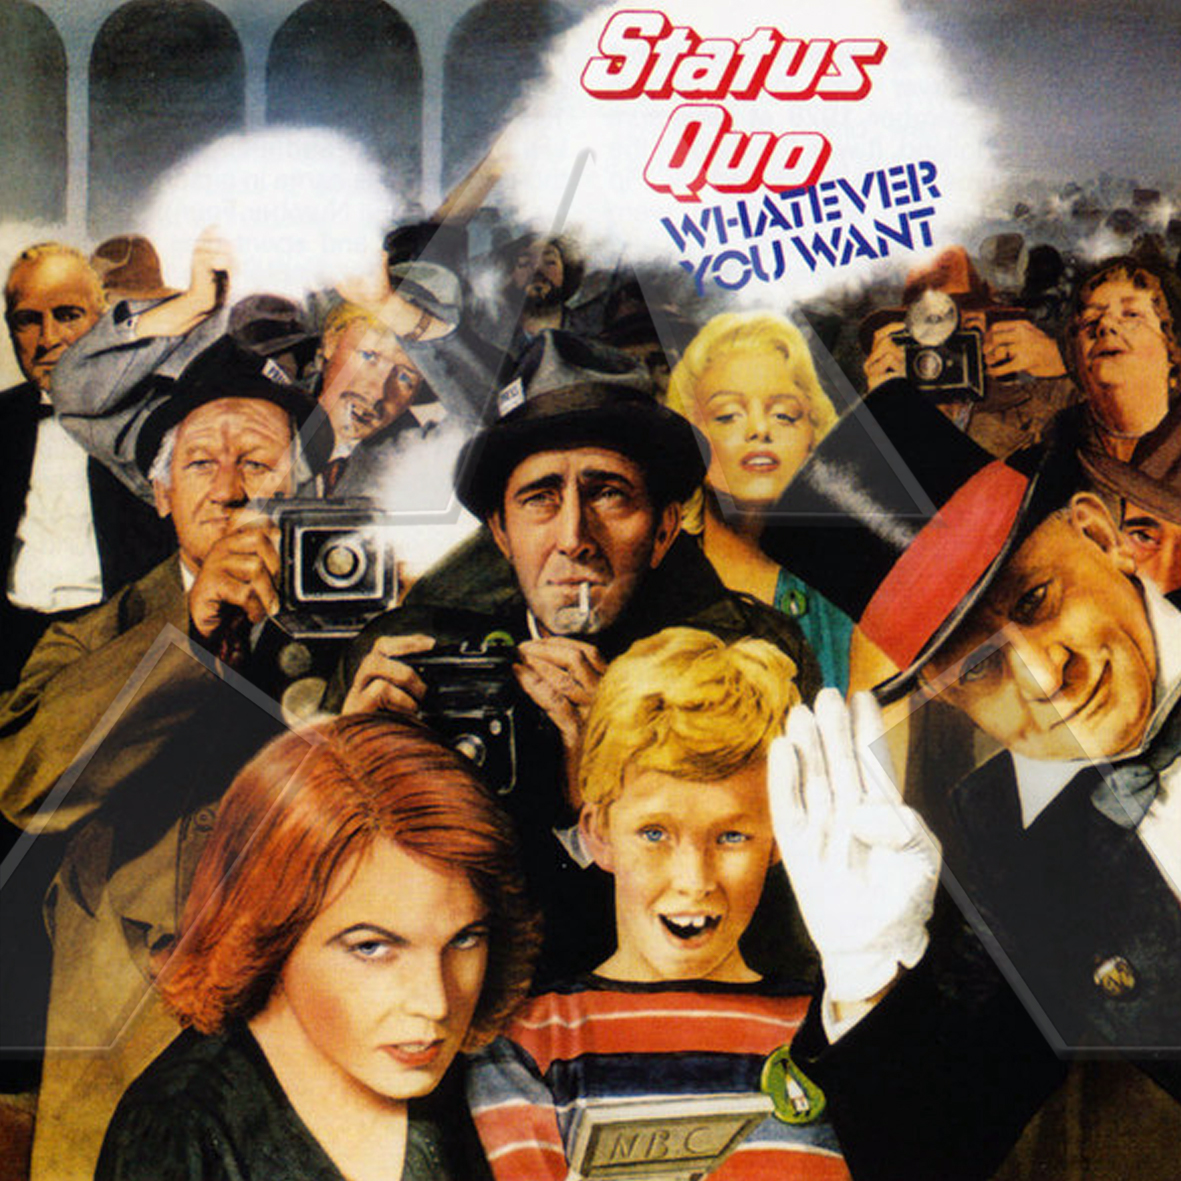 Status Quo ★ Whatever You Want (vinyl album EU)